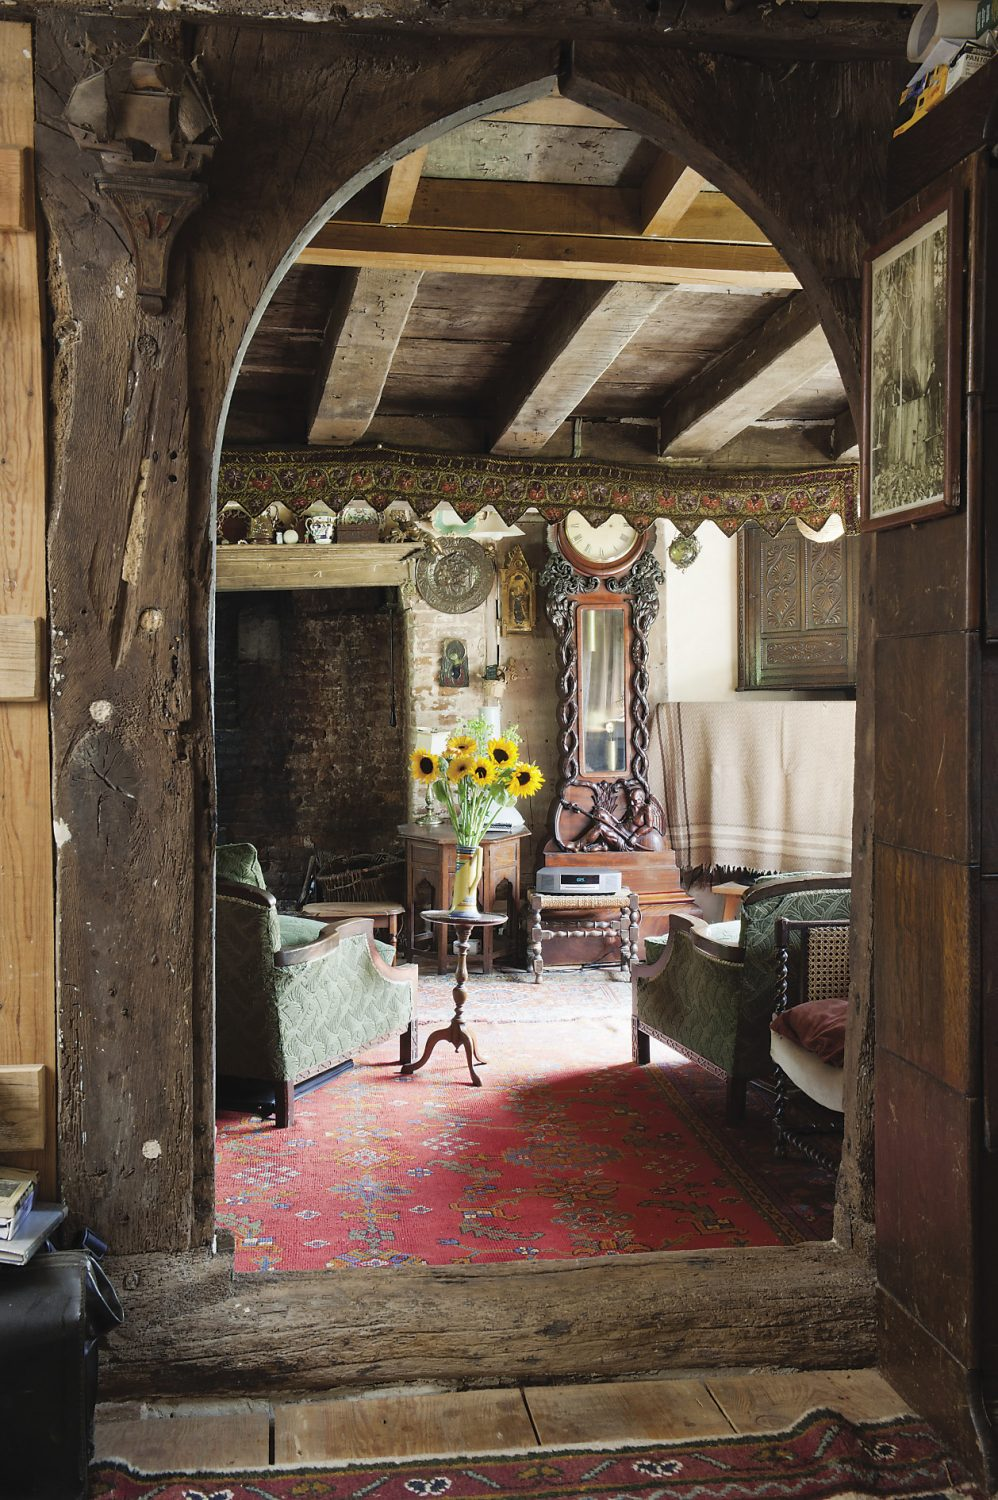 The study leads on to the drawing room or 'hall' dominated, perhaps a trifle smugly, by a massive and handsome grandfather clock that once belonged to Sarah's grandfather. The medieval lancet arch was discovered buried behind plasterboard